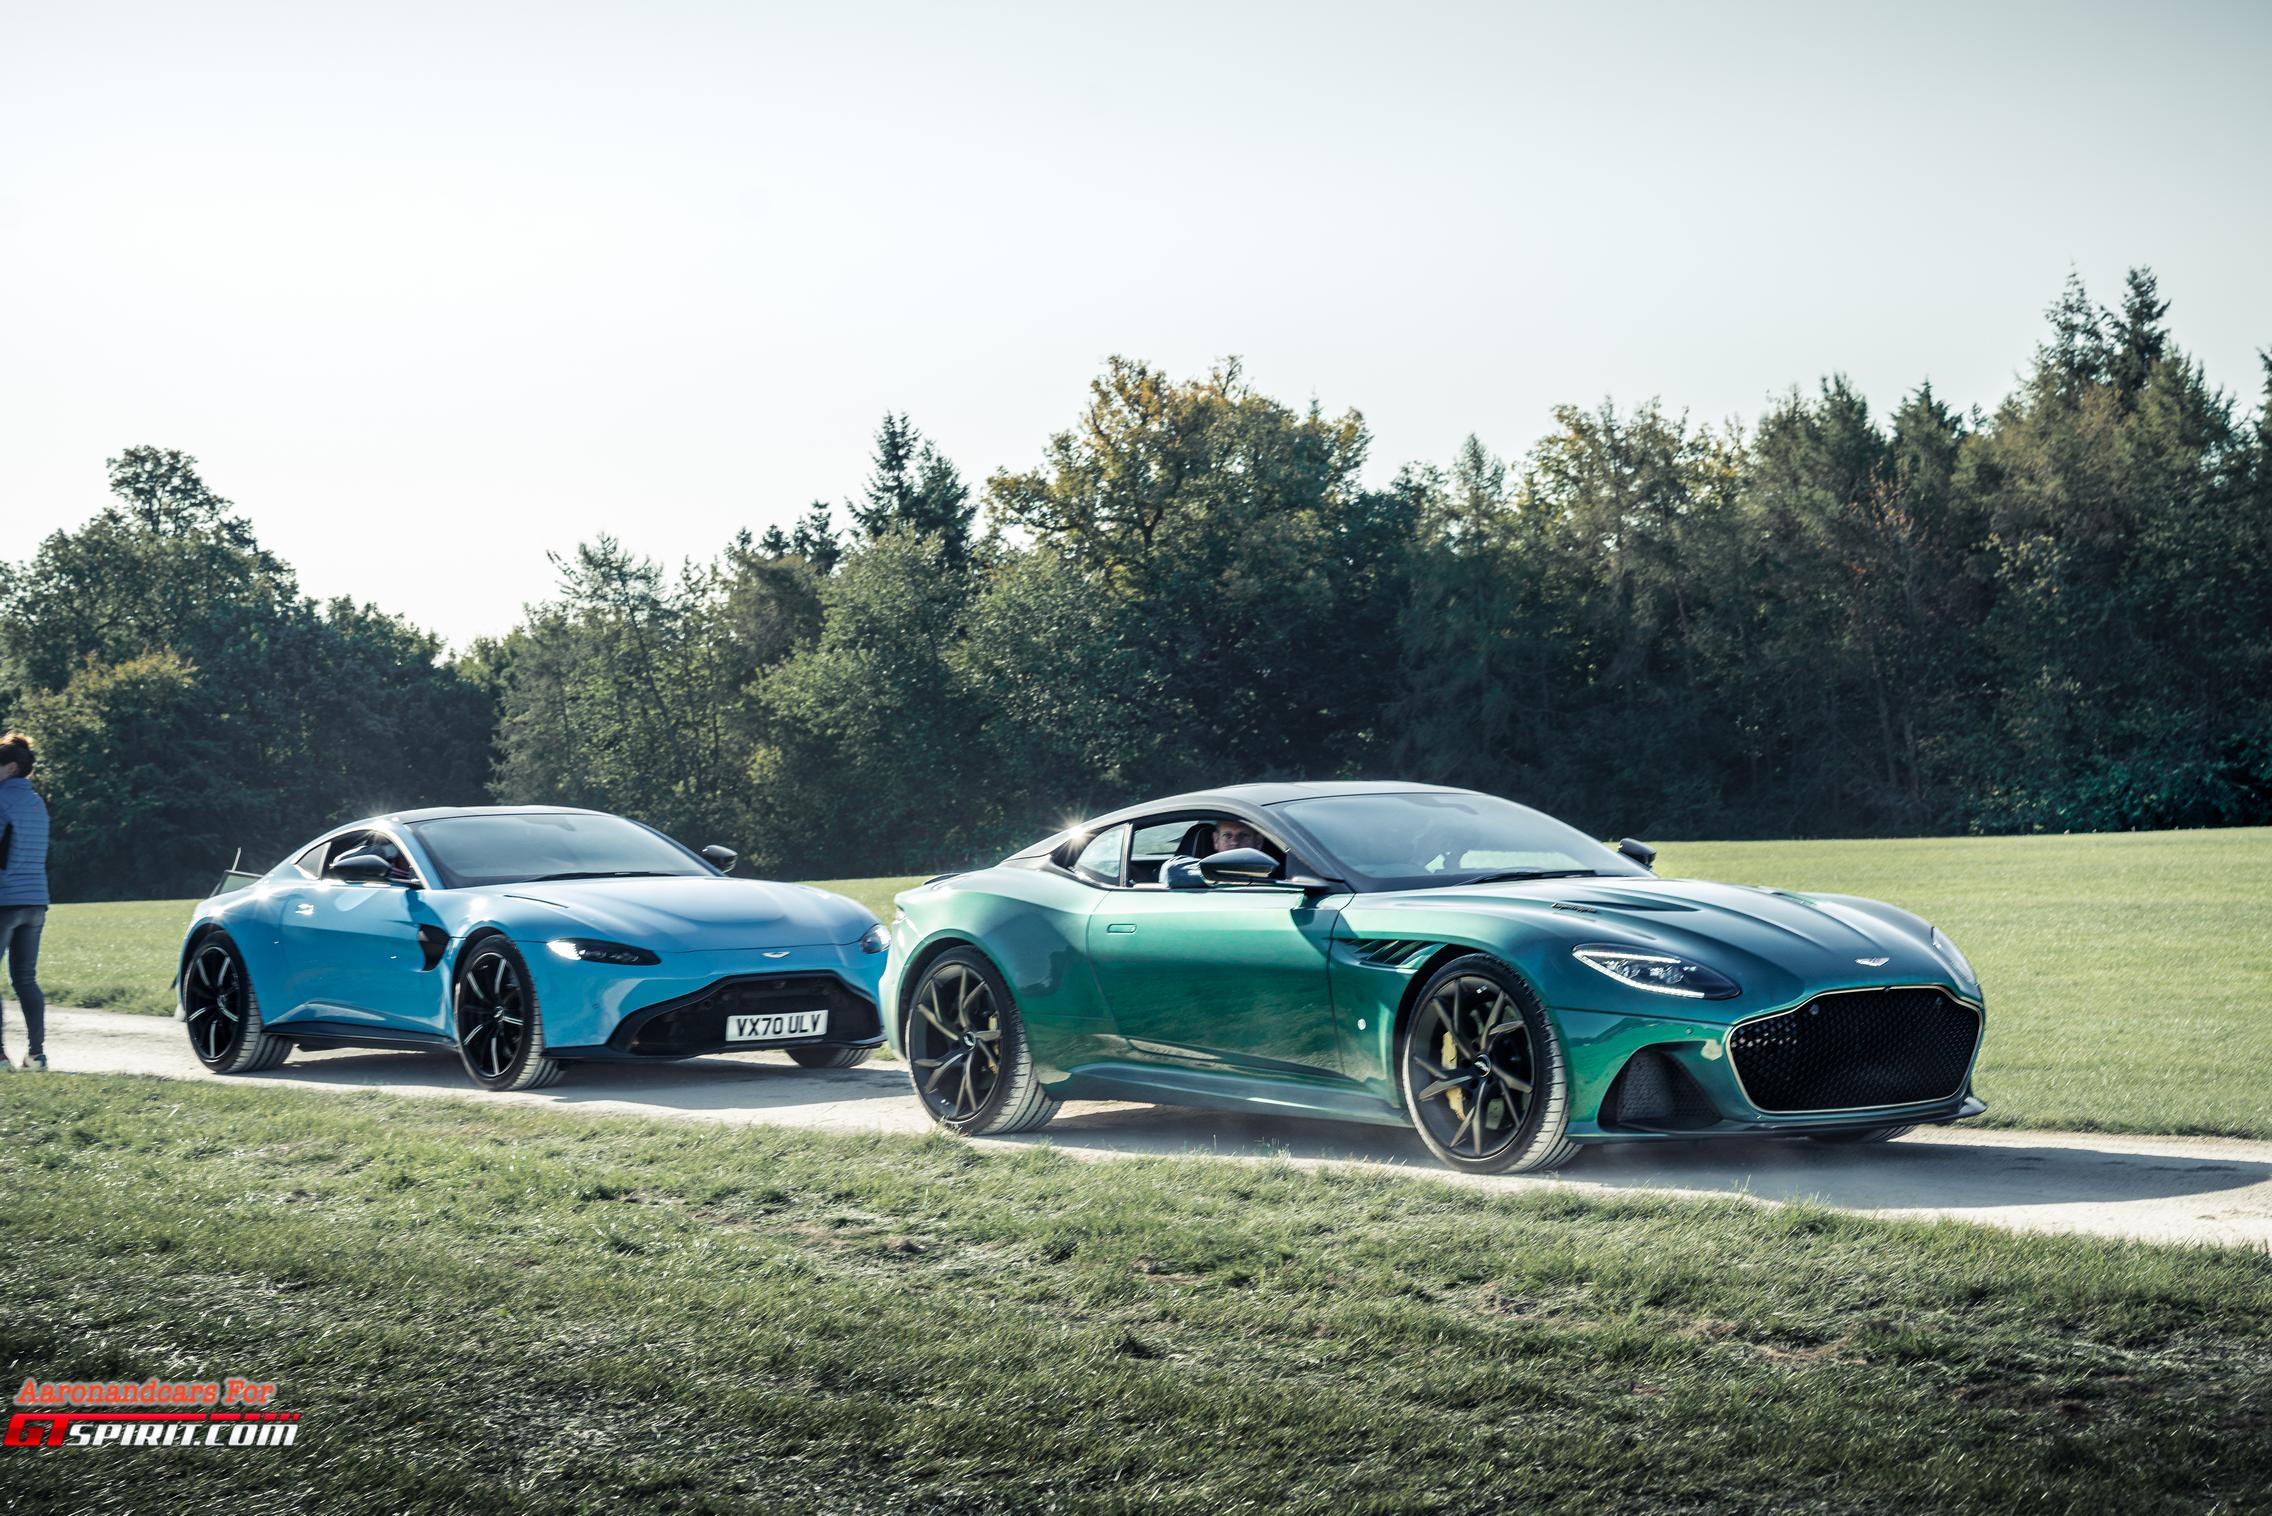 Salon Prive 2020 Aston Martin DBS